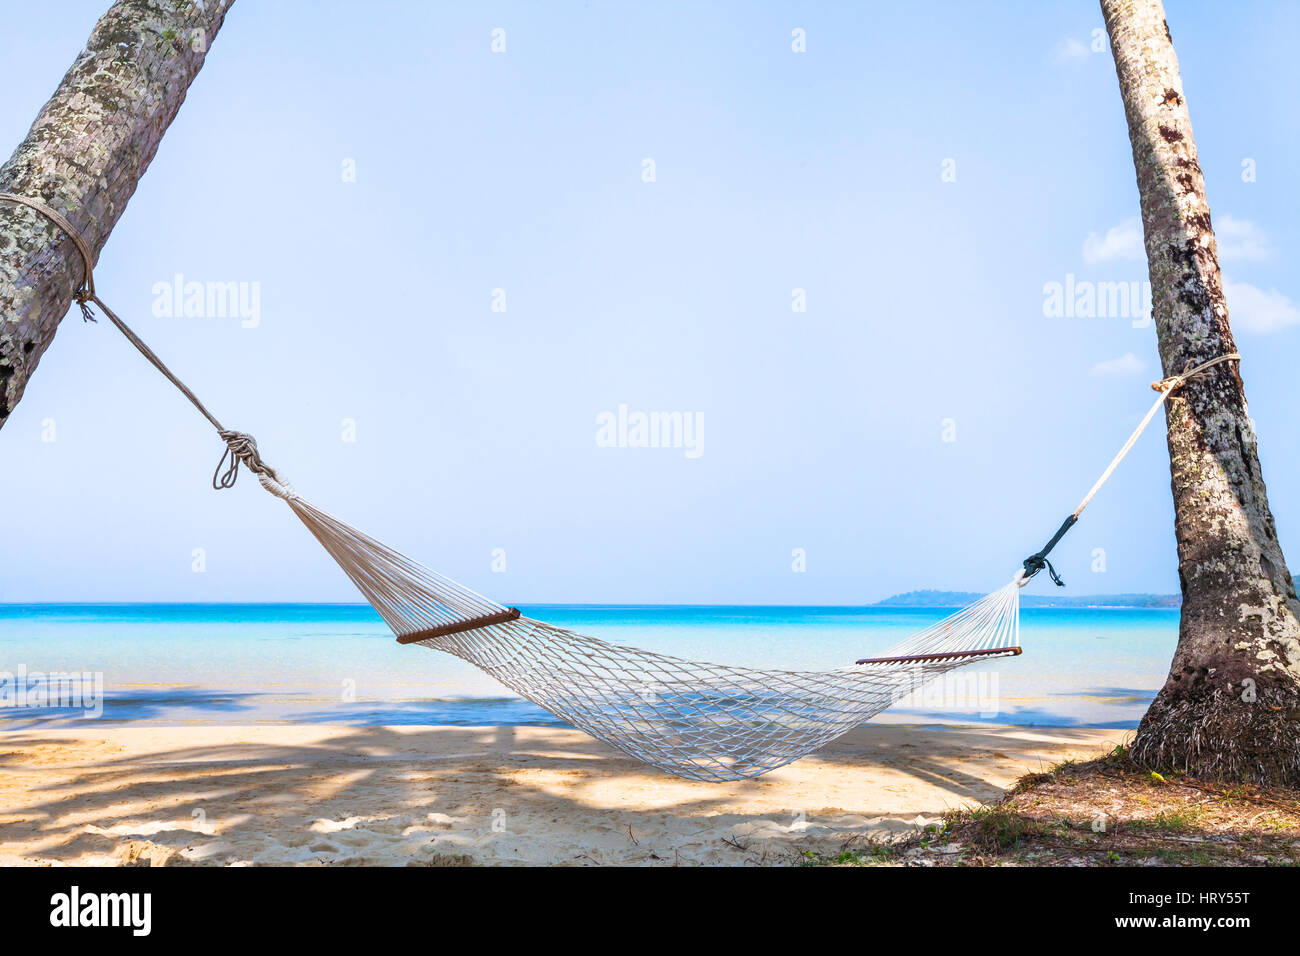 beach holidays on tropical island, beautiful hammock in hotel, relaxation concept background - Stock Image